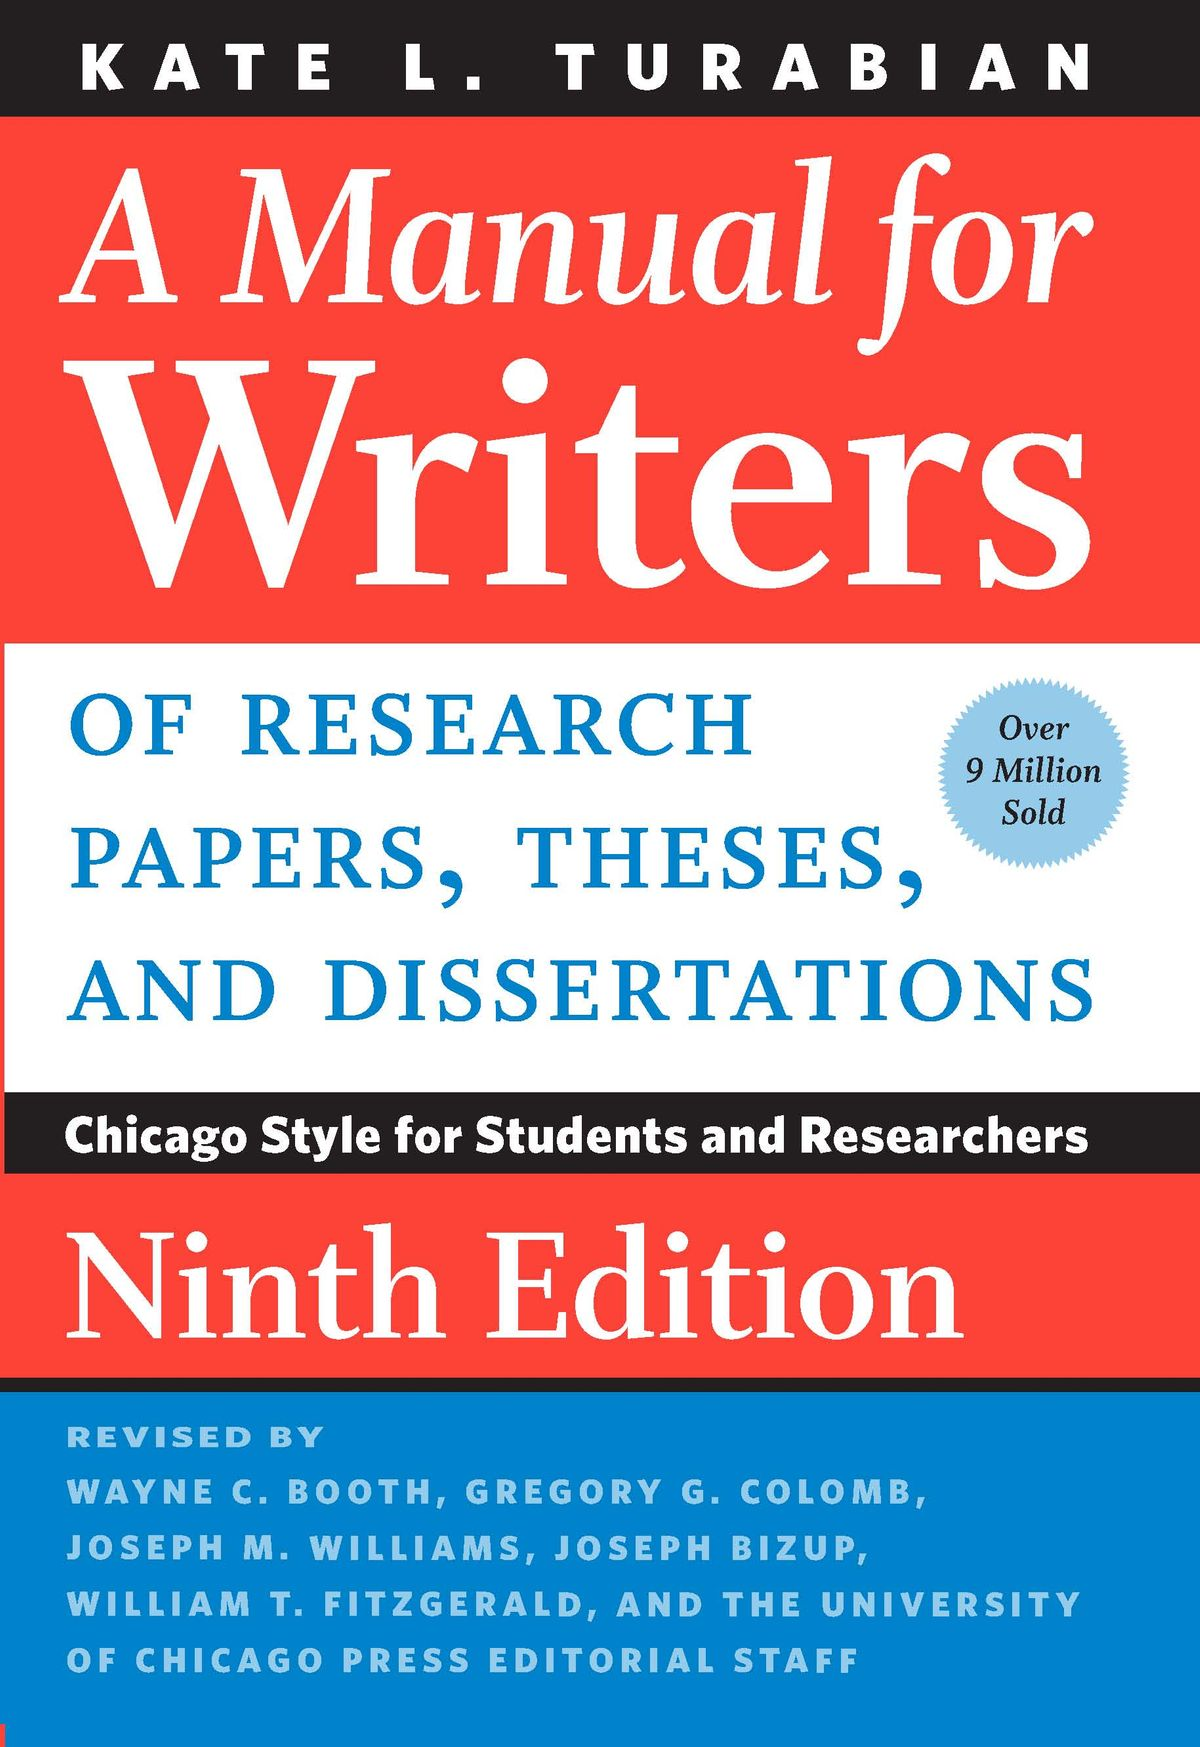 001 Manual For Writers Of Researchs Theses And Dissertations 9th Edition Pdf Ninth Wonderful A Research Papers Full